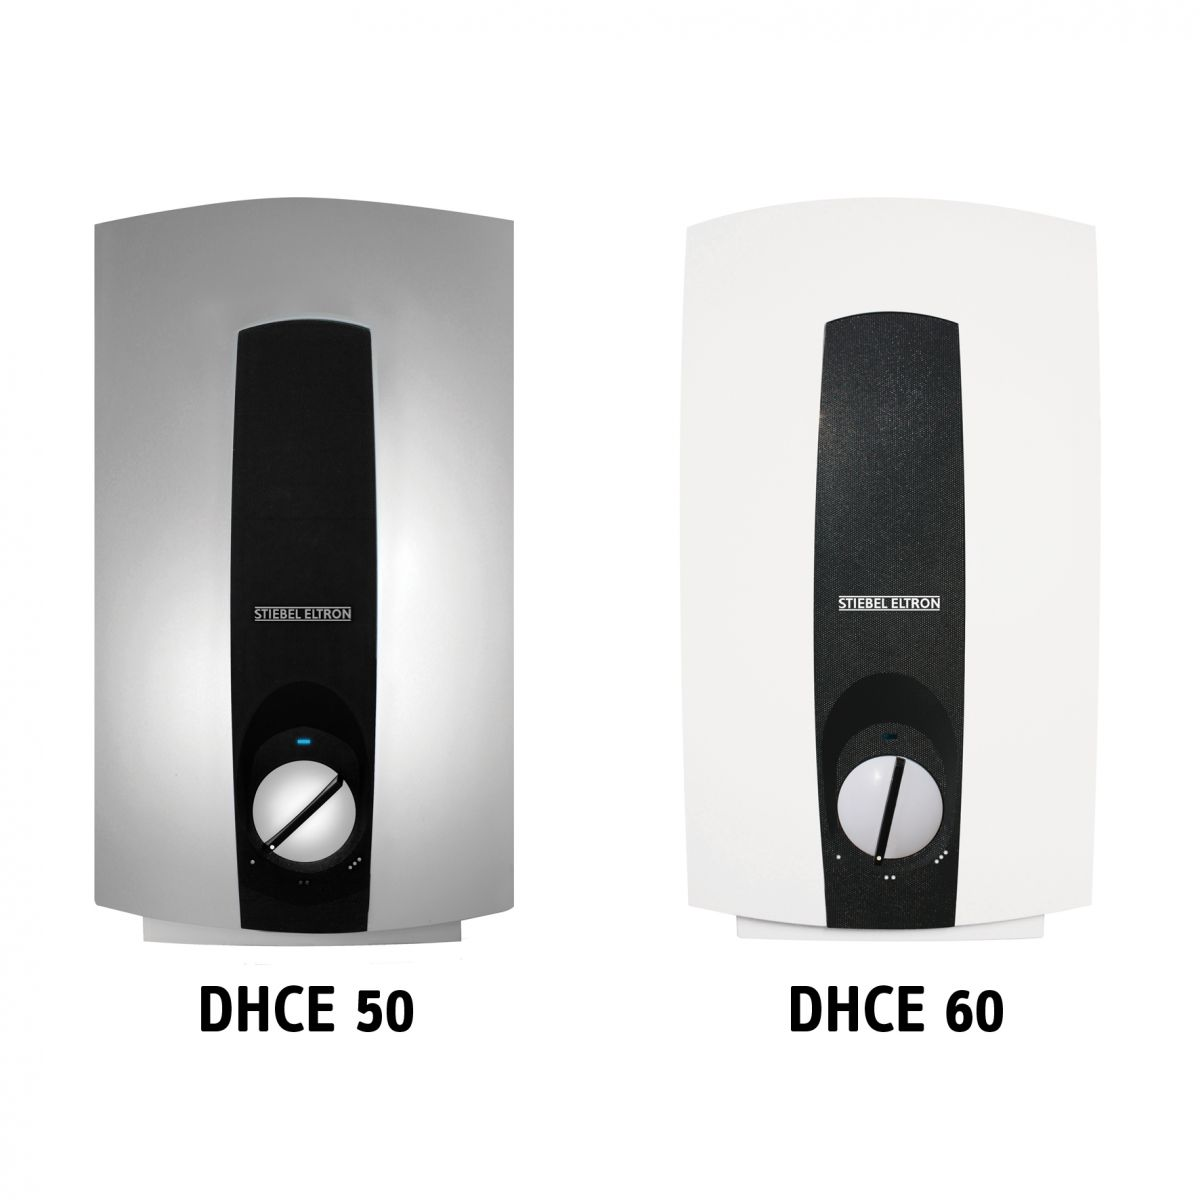 DHCE single phase instant water heaters